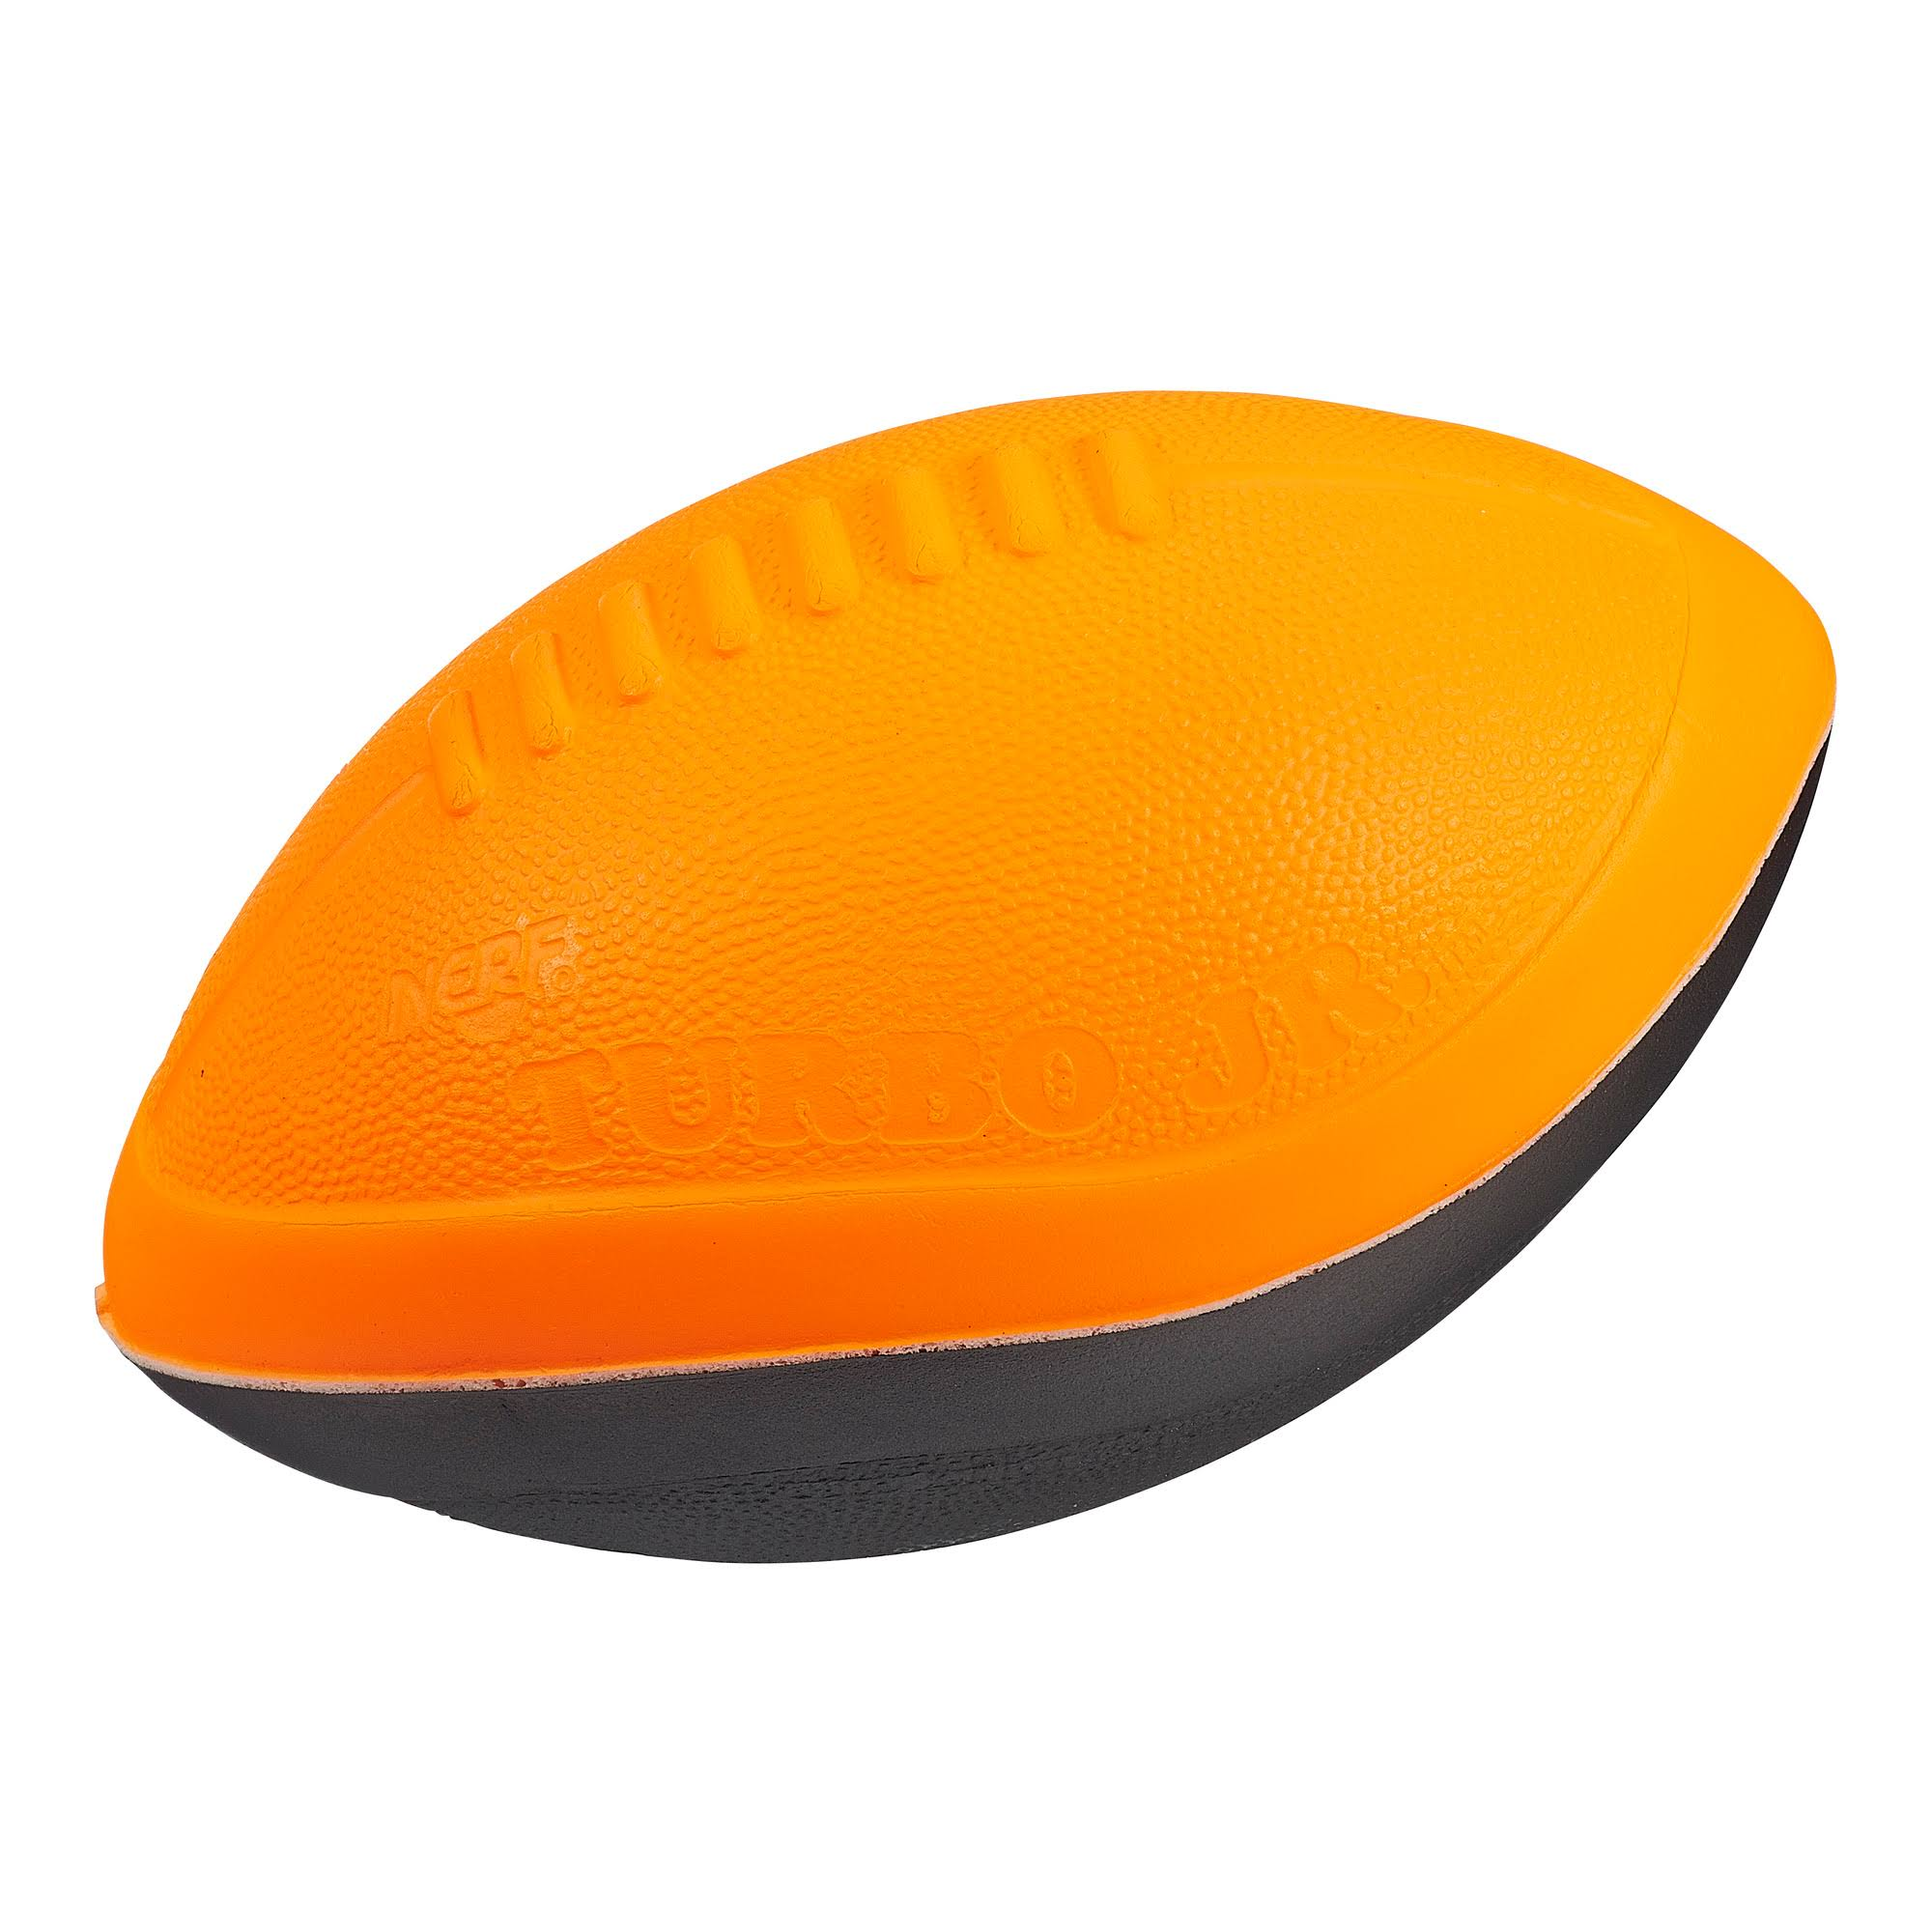 Nerf N-Sports Turbo Jr. Football - Orange/Silver